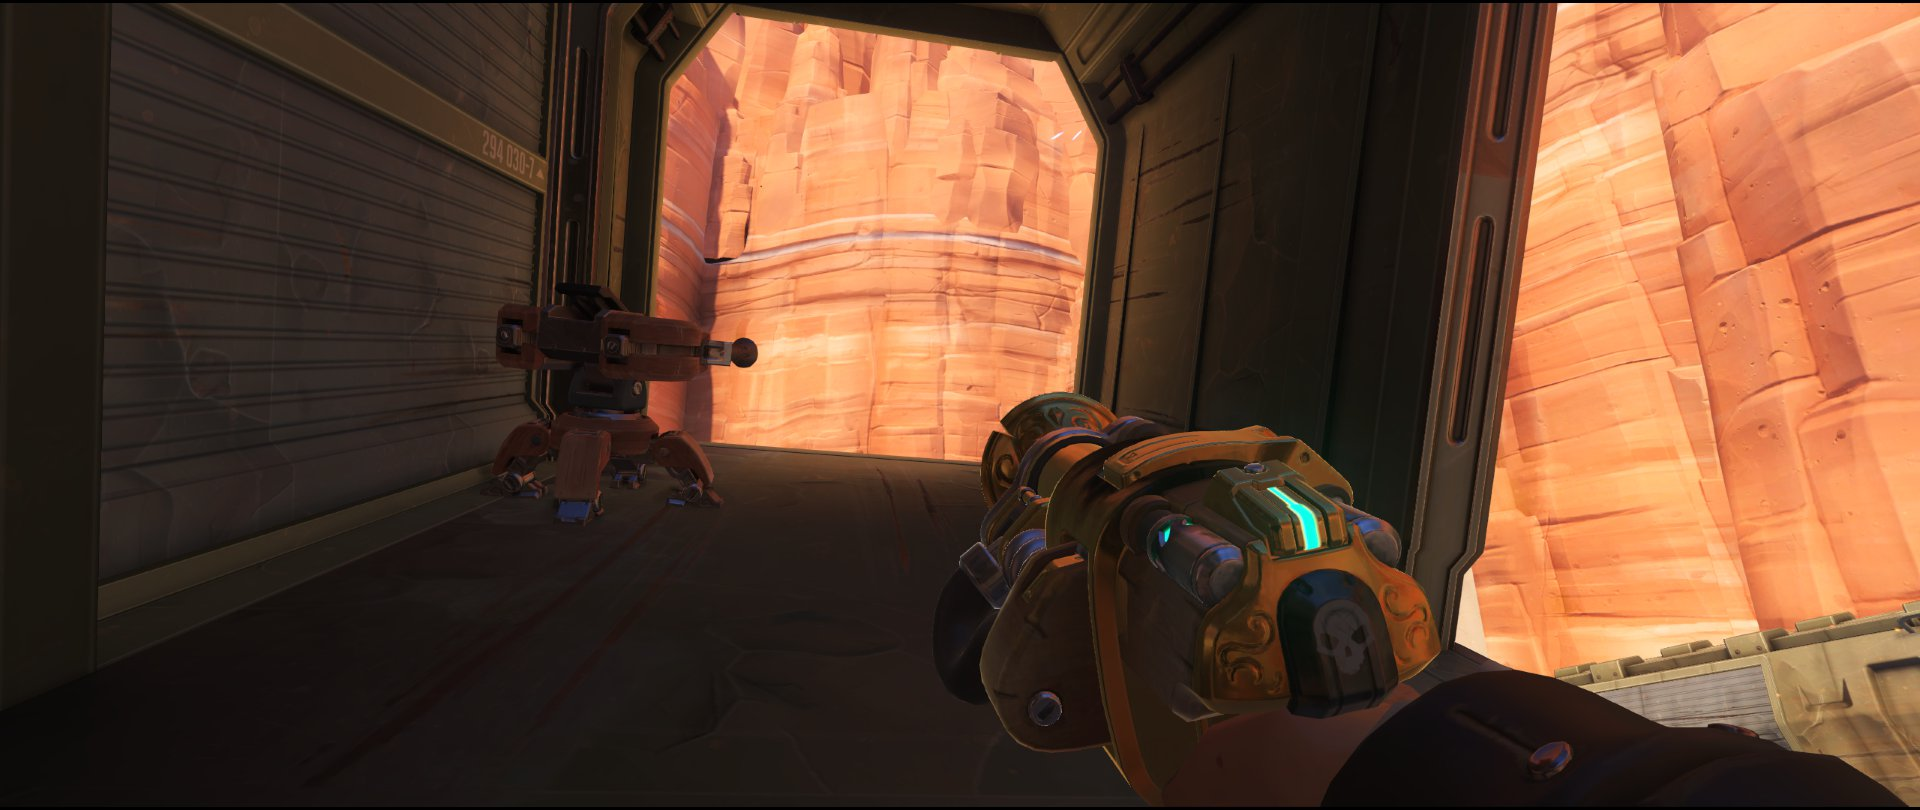 Boxcar+start+turret+placement+Torbjorn+Route+66+Overwatch